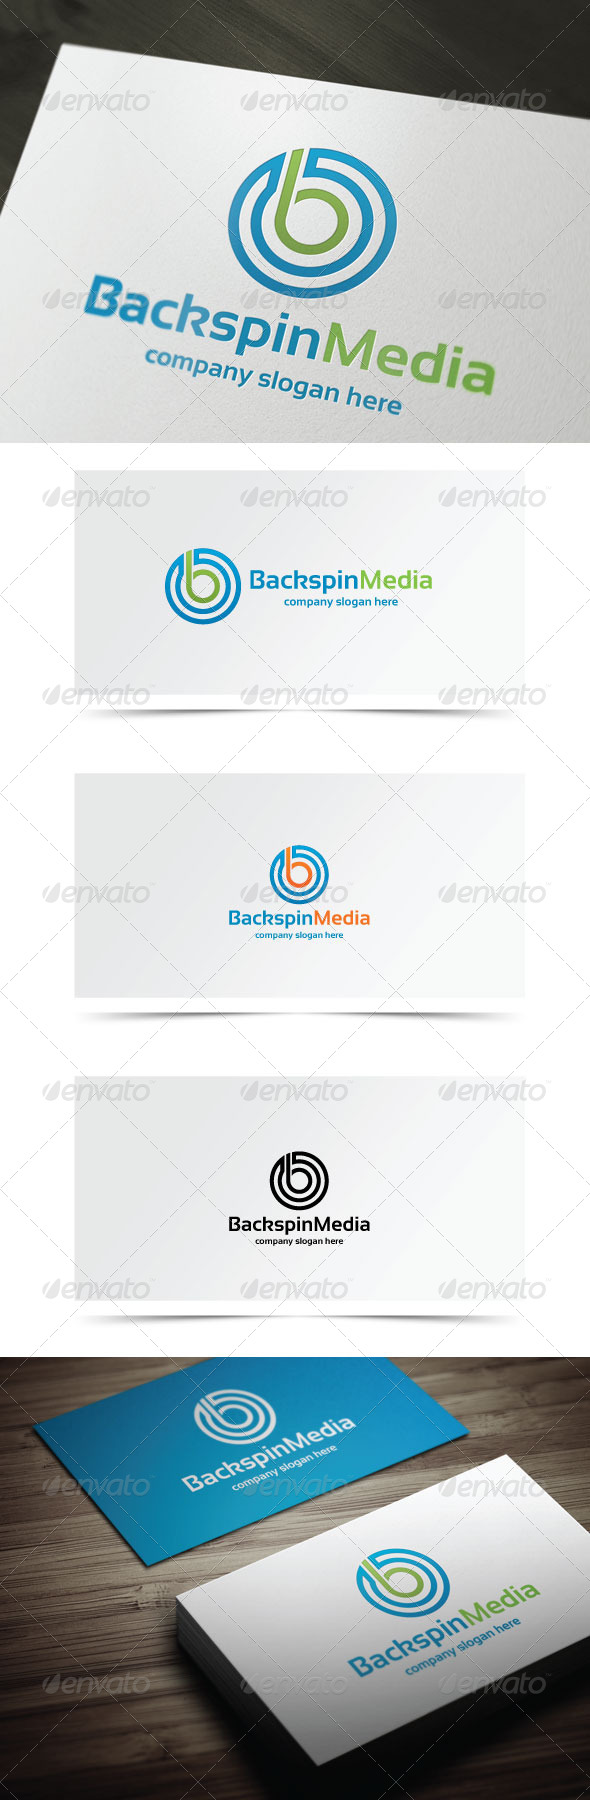 GraphicRiver Backspin Media 7841943